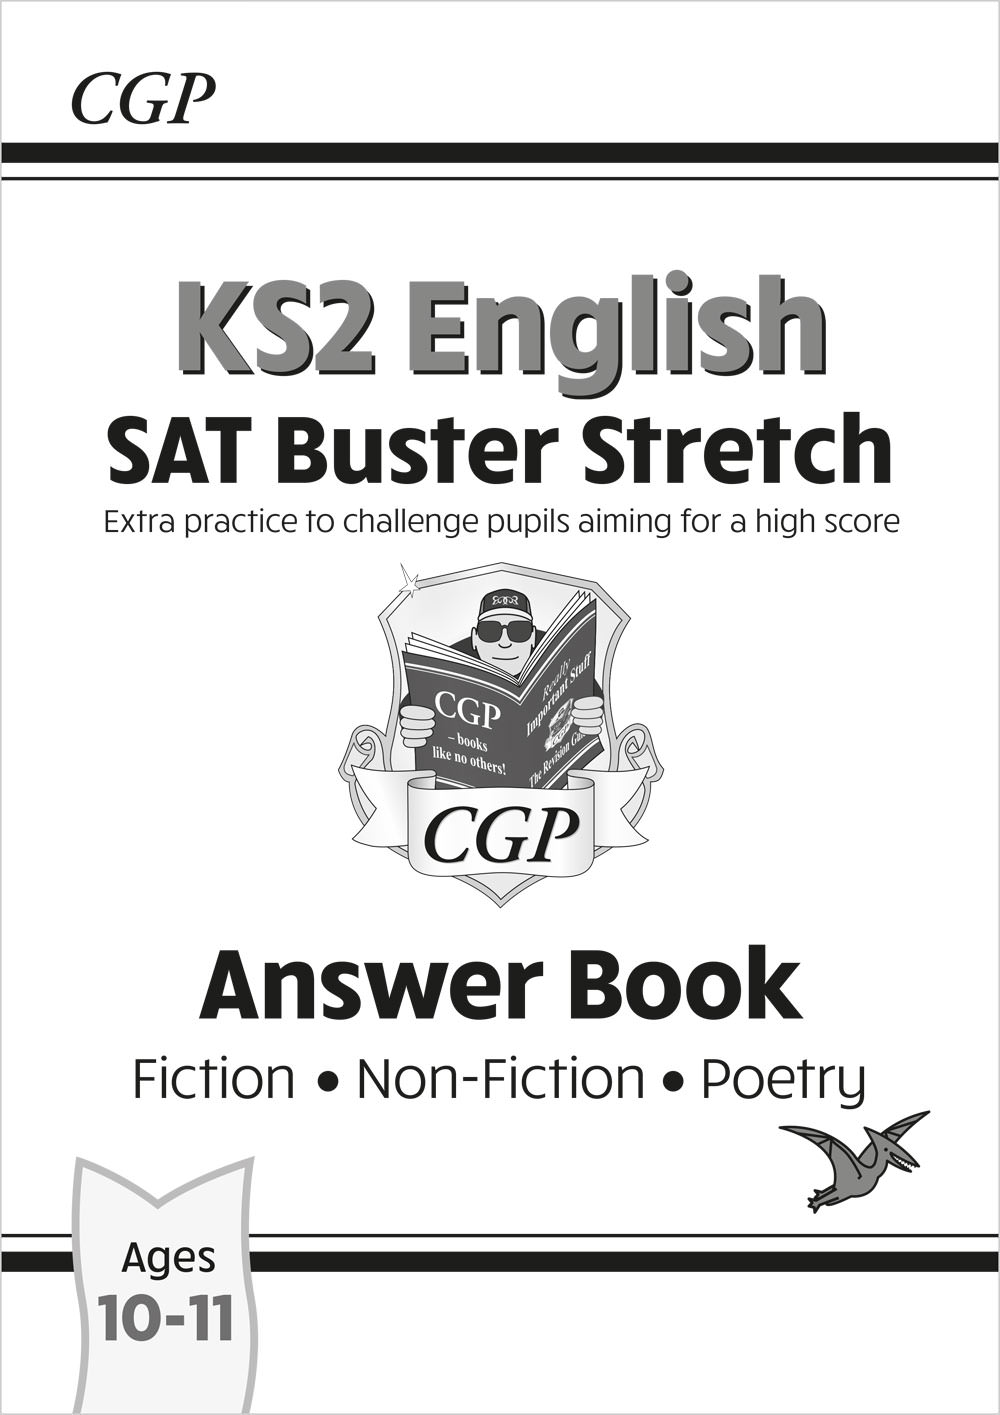 E6HRA22 - New KS2 English Reading SAT Buster Stretch: Answer Book